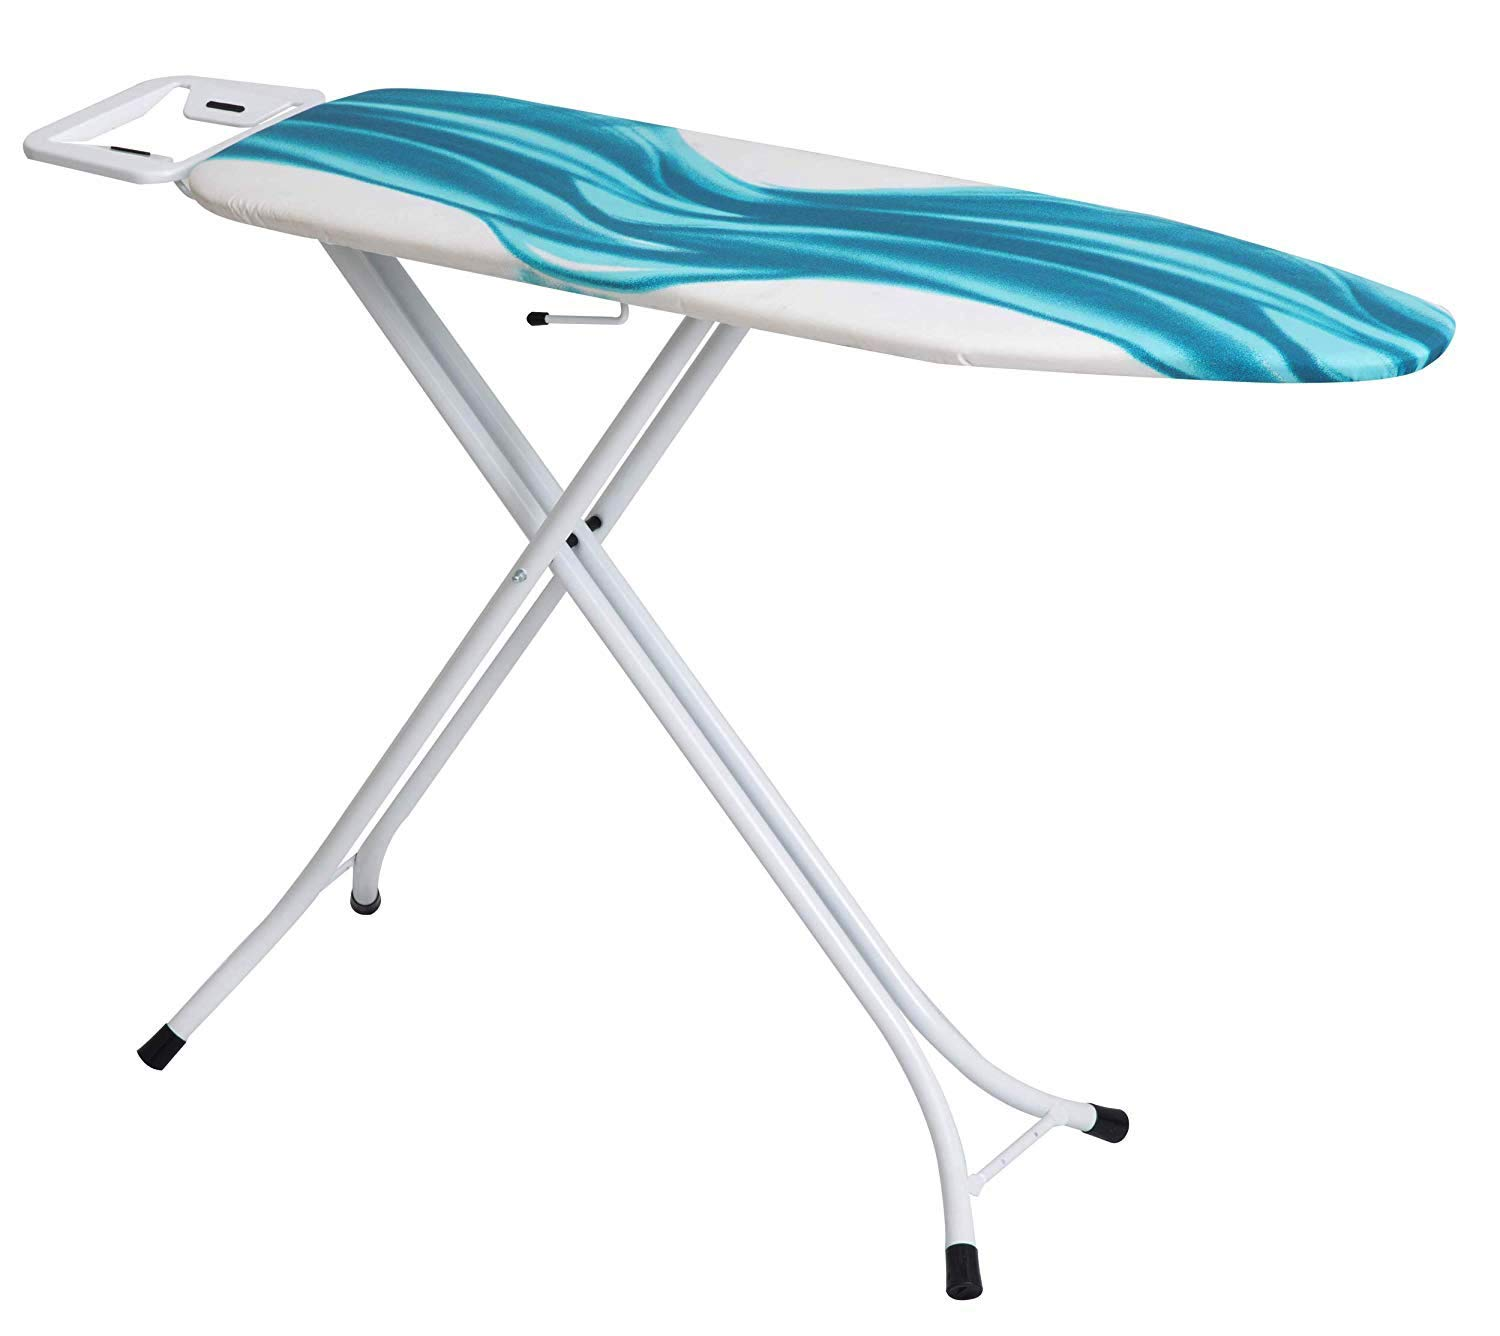 Mabel Home Ironing Board, Adjustable Height, Deluxe, 4-Leg + Extra Cover, Blue & White Patterned by Mabel Home